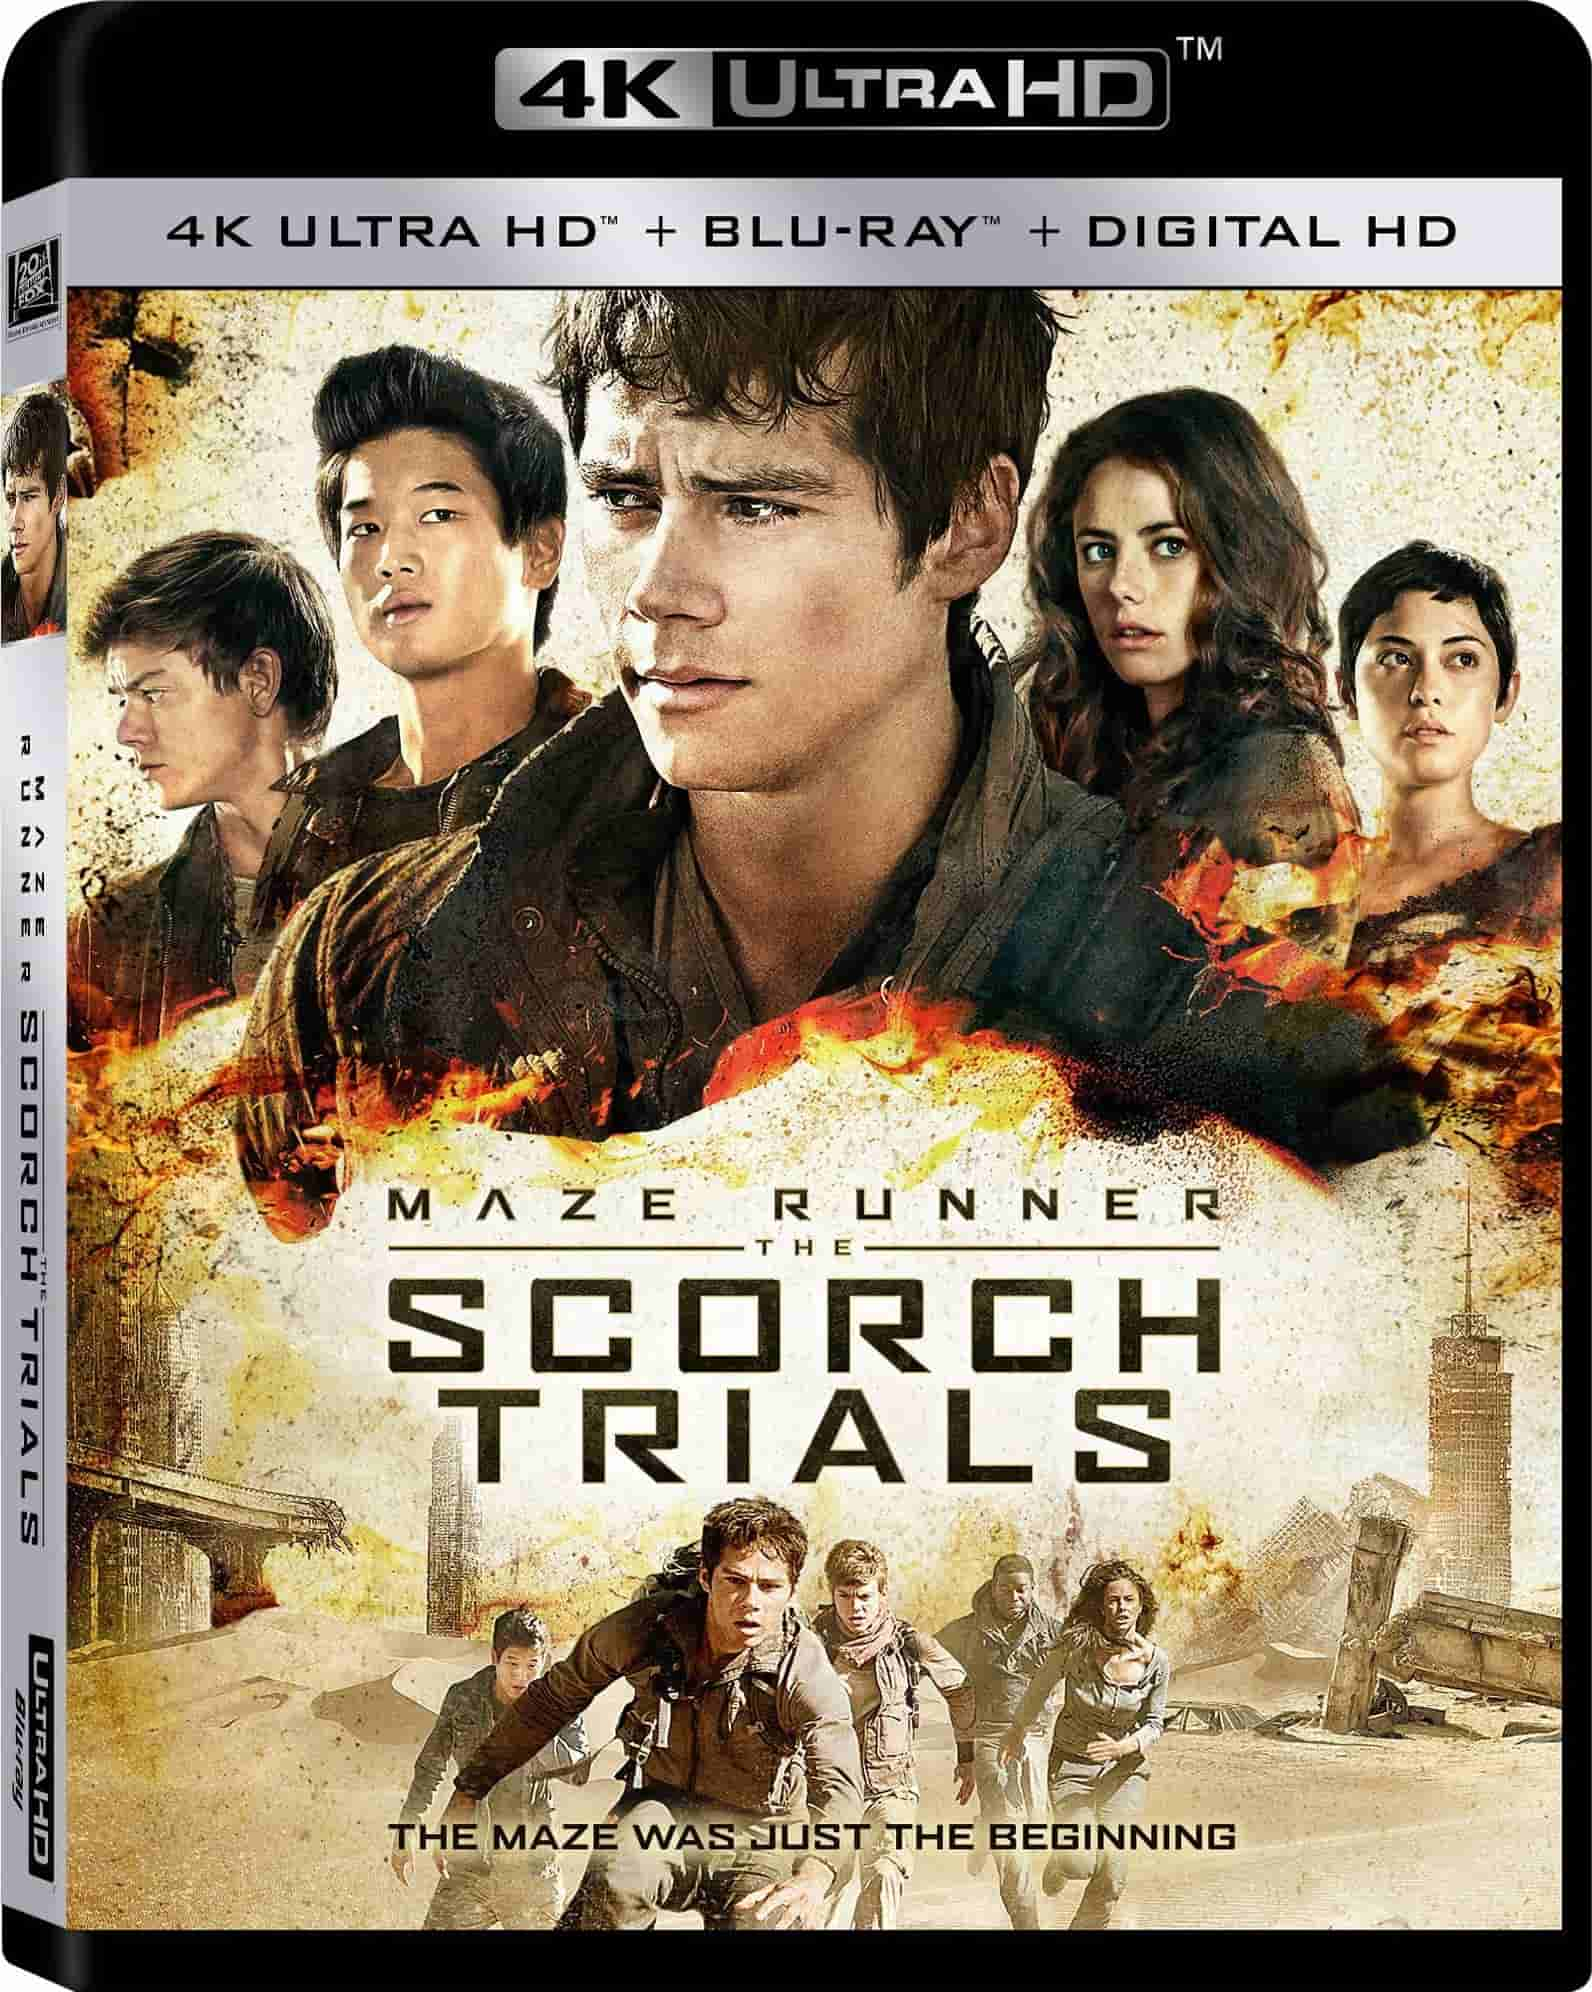 Maze Runner The Scorch Trials 4K 2015 Ultra HD